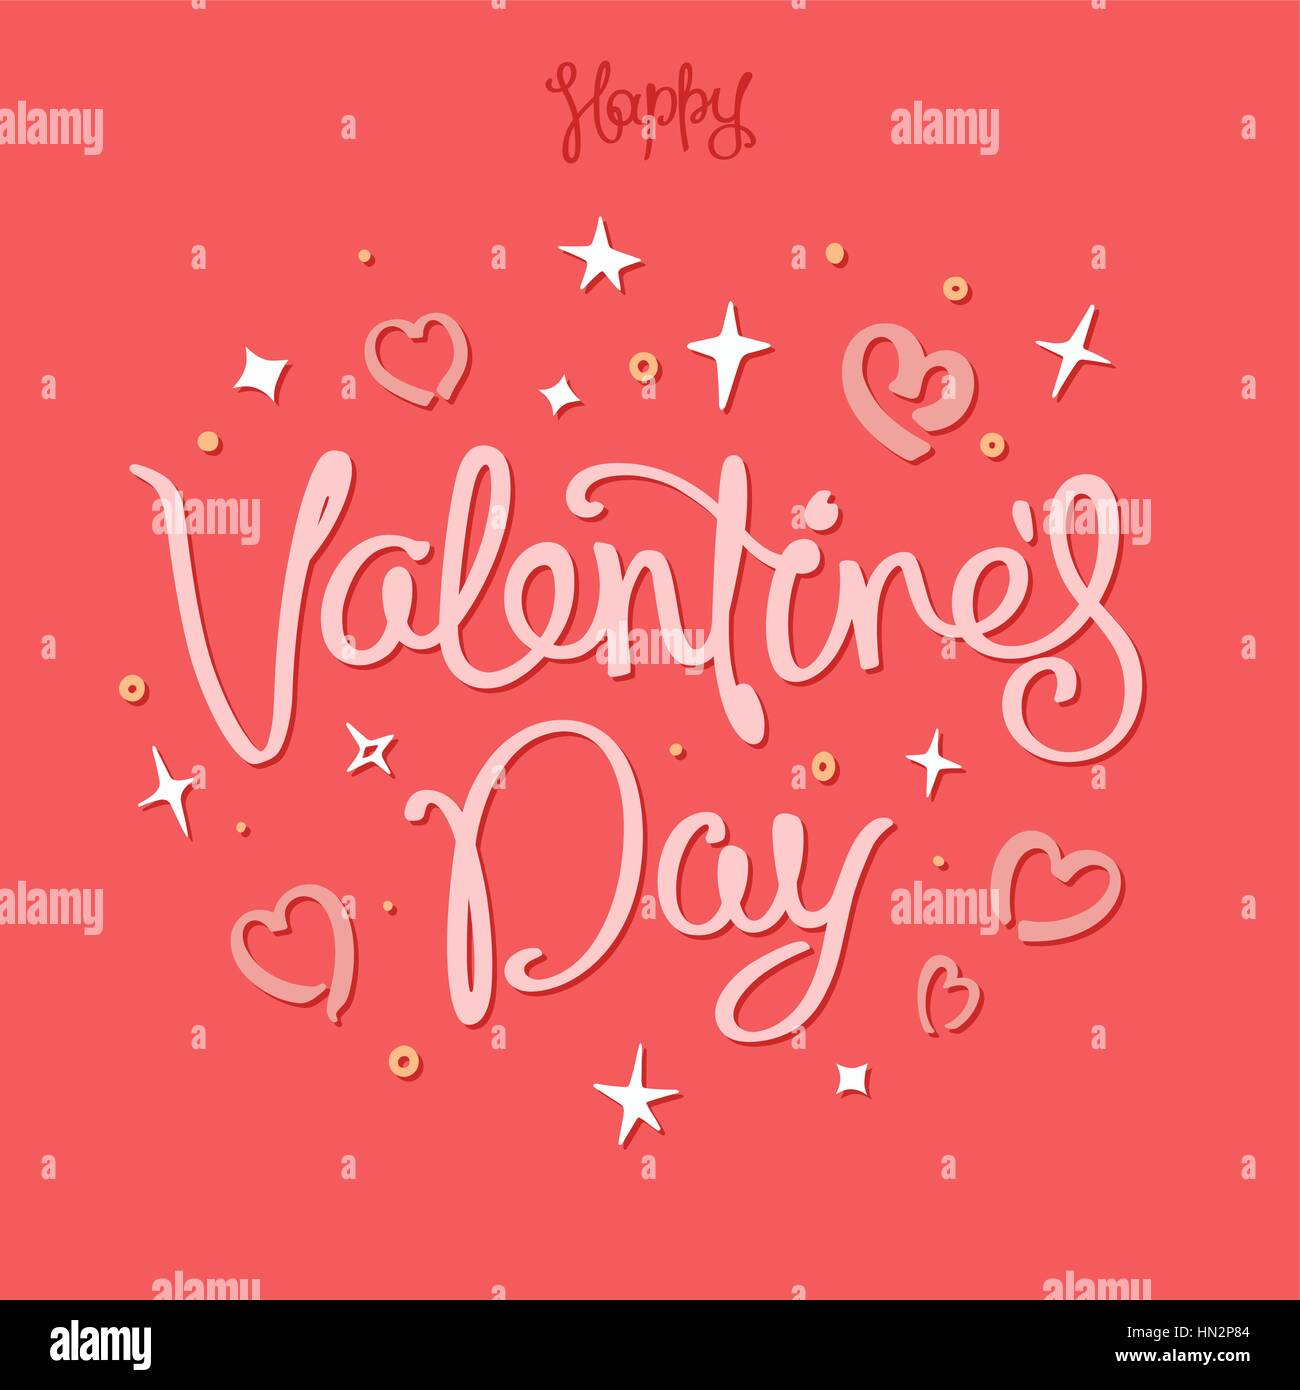 Funny happy valentines day greetings card trendy handwritten stock funny happy valentines day greetings card trendy handwritten calligraphy composition design elements vector illustration m4hsunfo